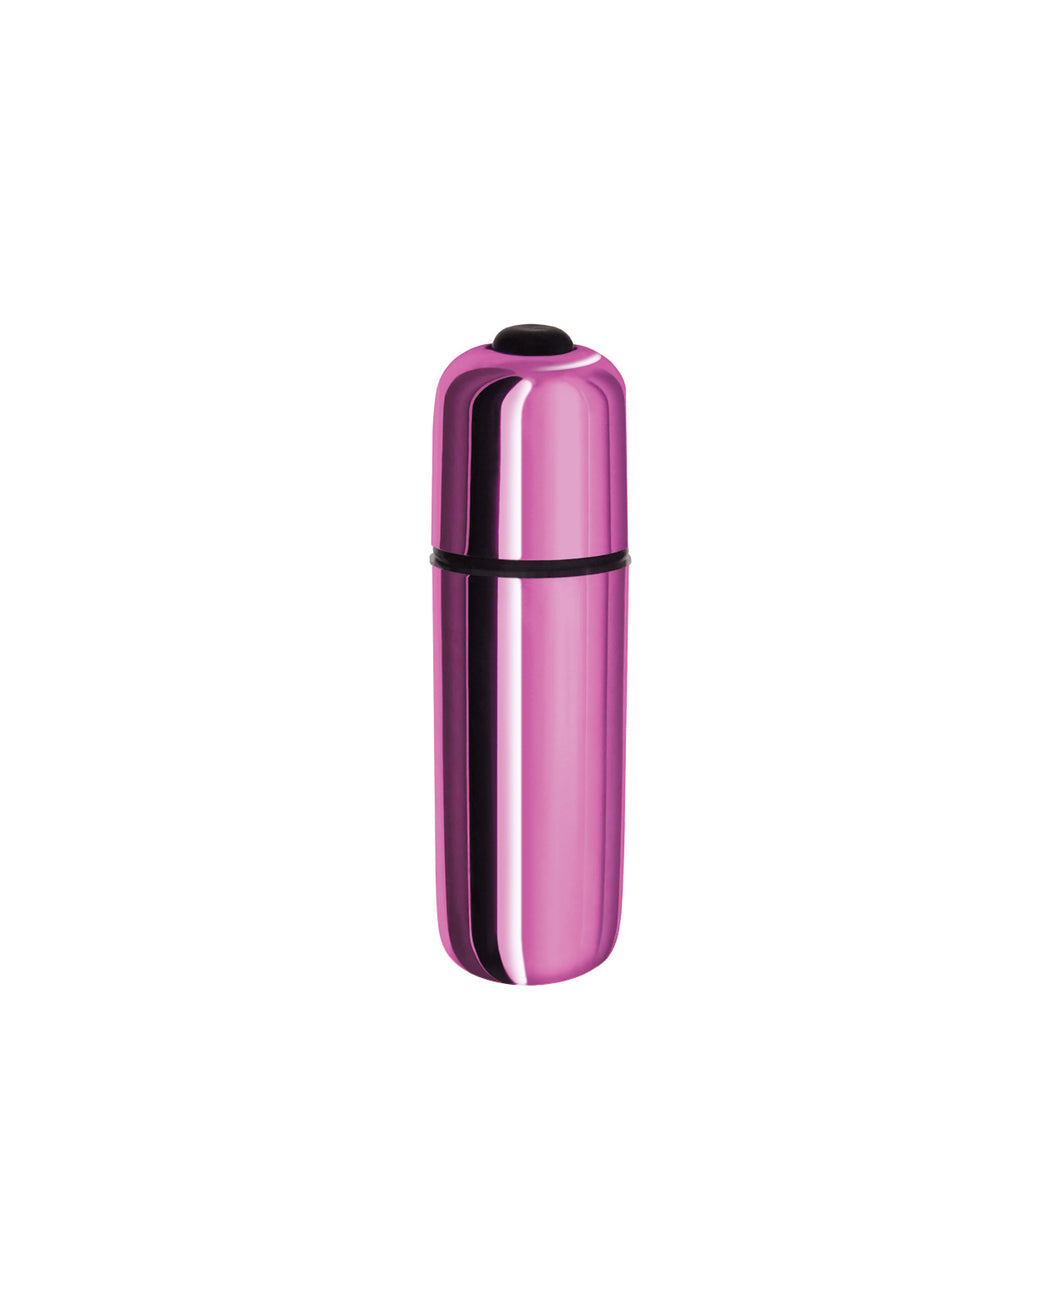 Erotic Toy Company Chrome Classics Bullet - 7 Speed Pink